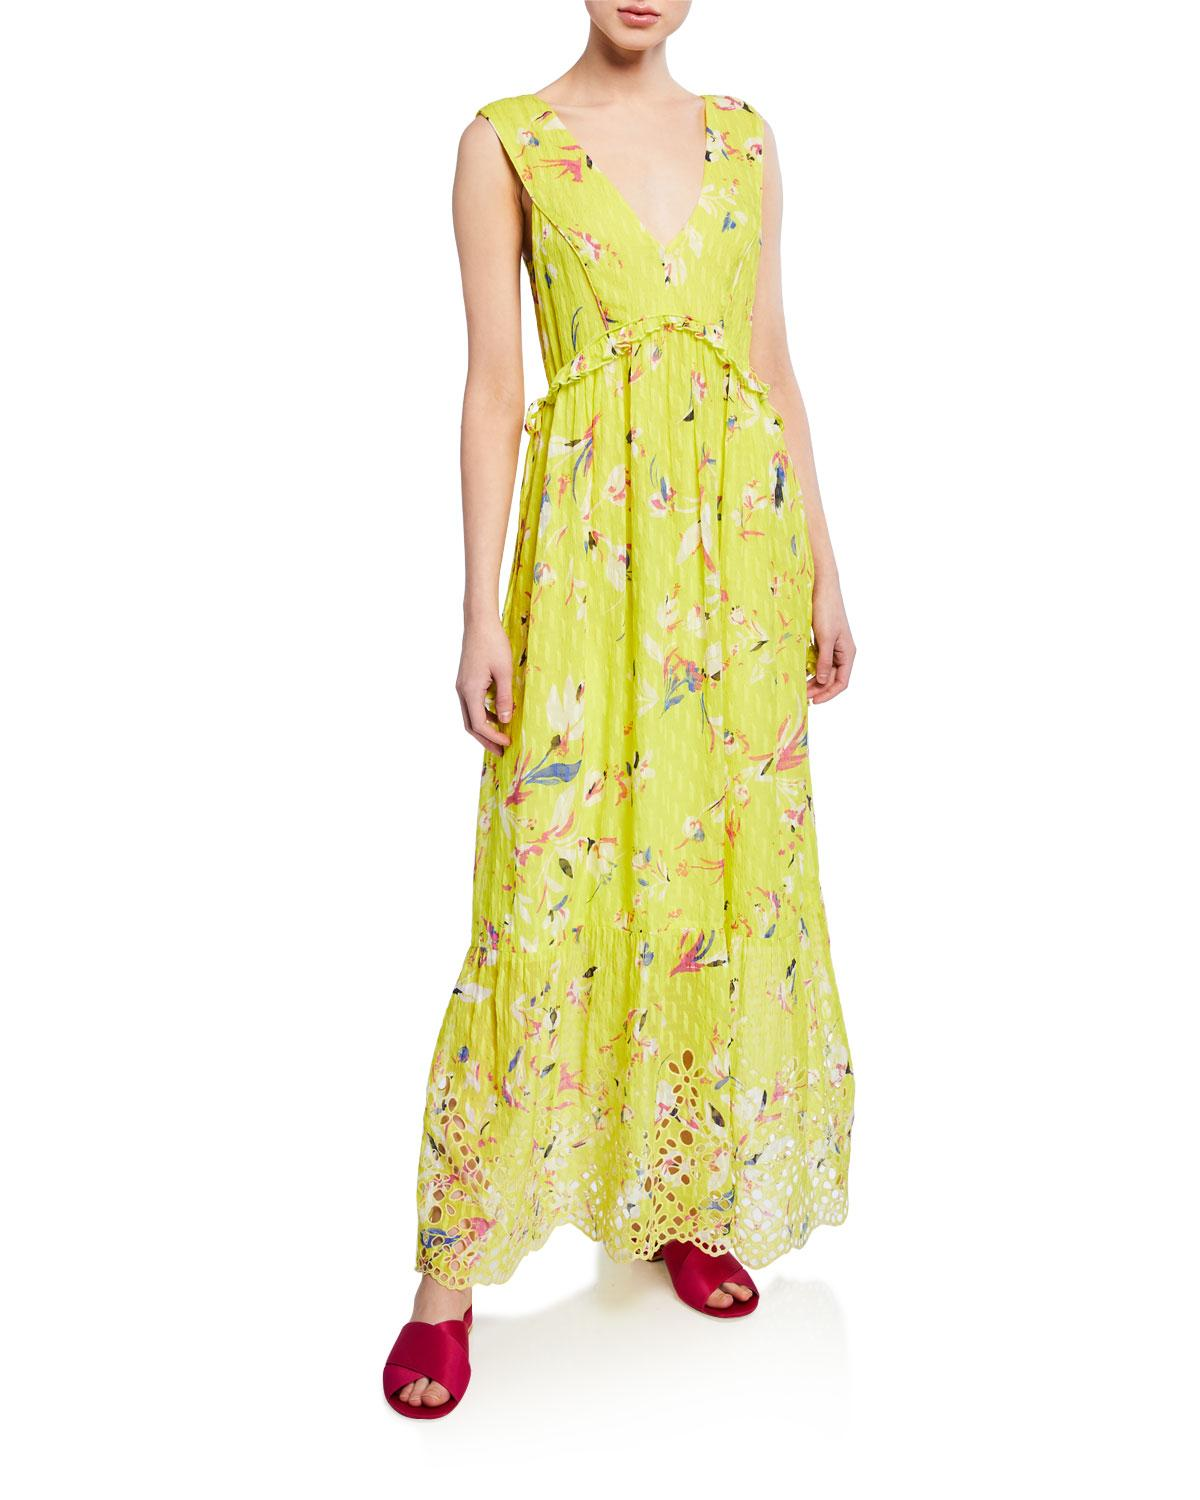 d53f5069e30 Women's Yellow Catalina Floral-print V-neck Sleeveless Maxi Dress